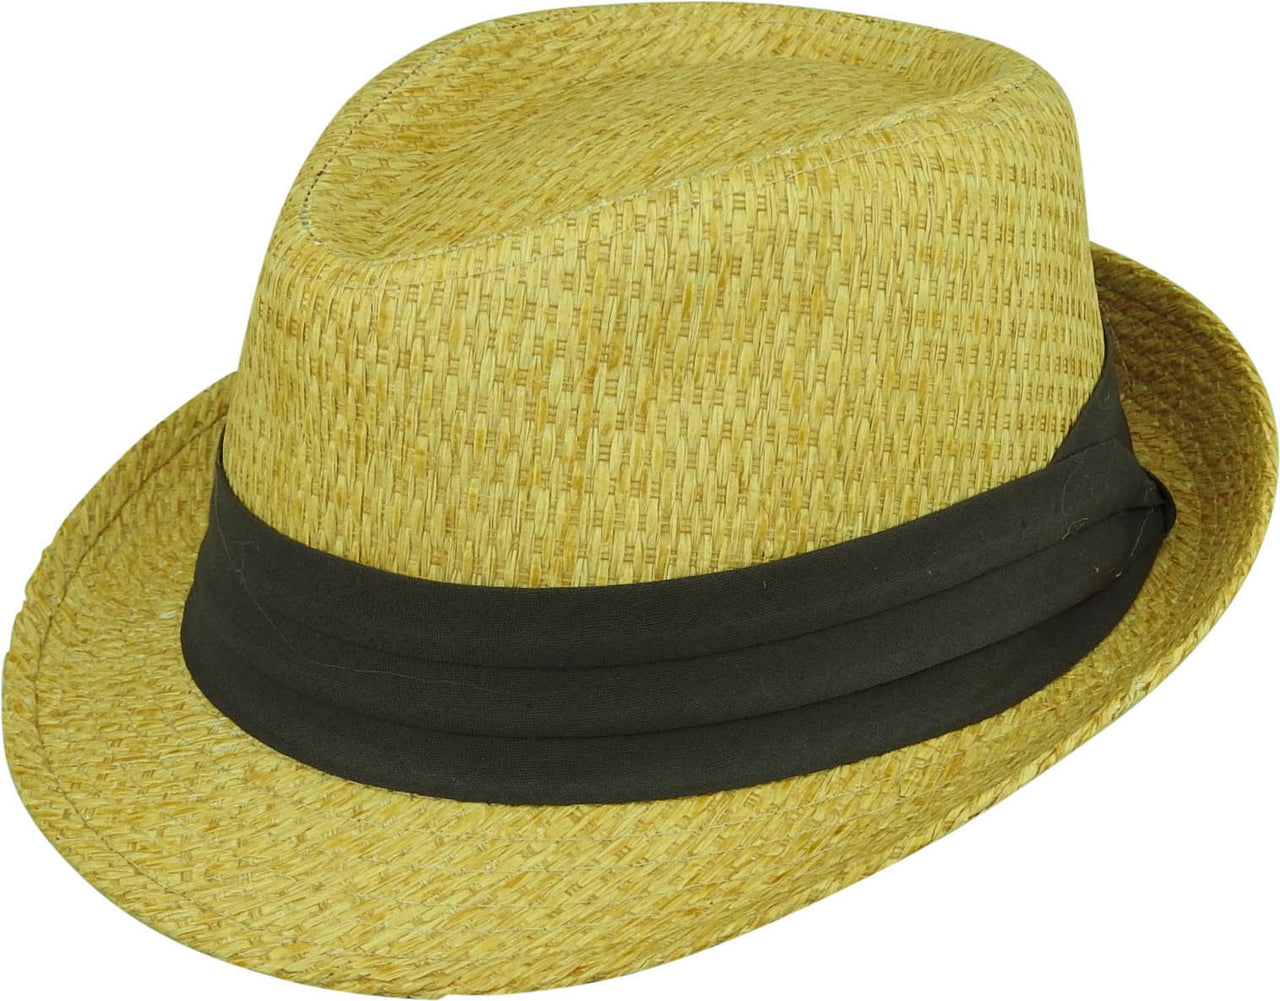 Avenel Straw Trilby with Puggaree